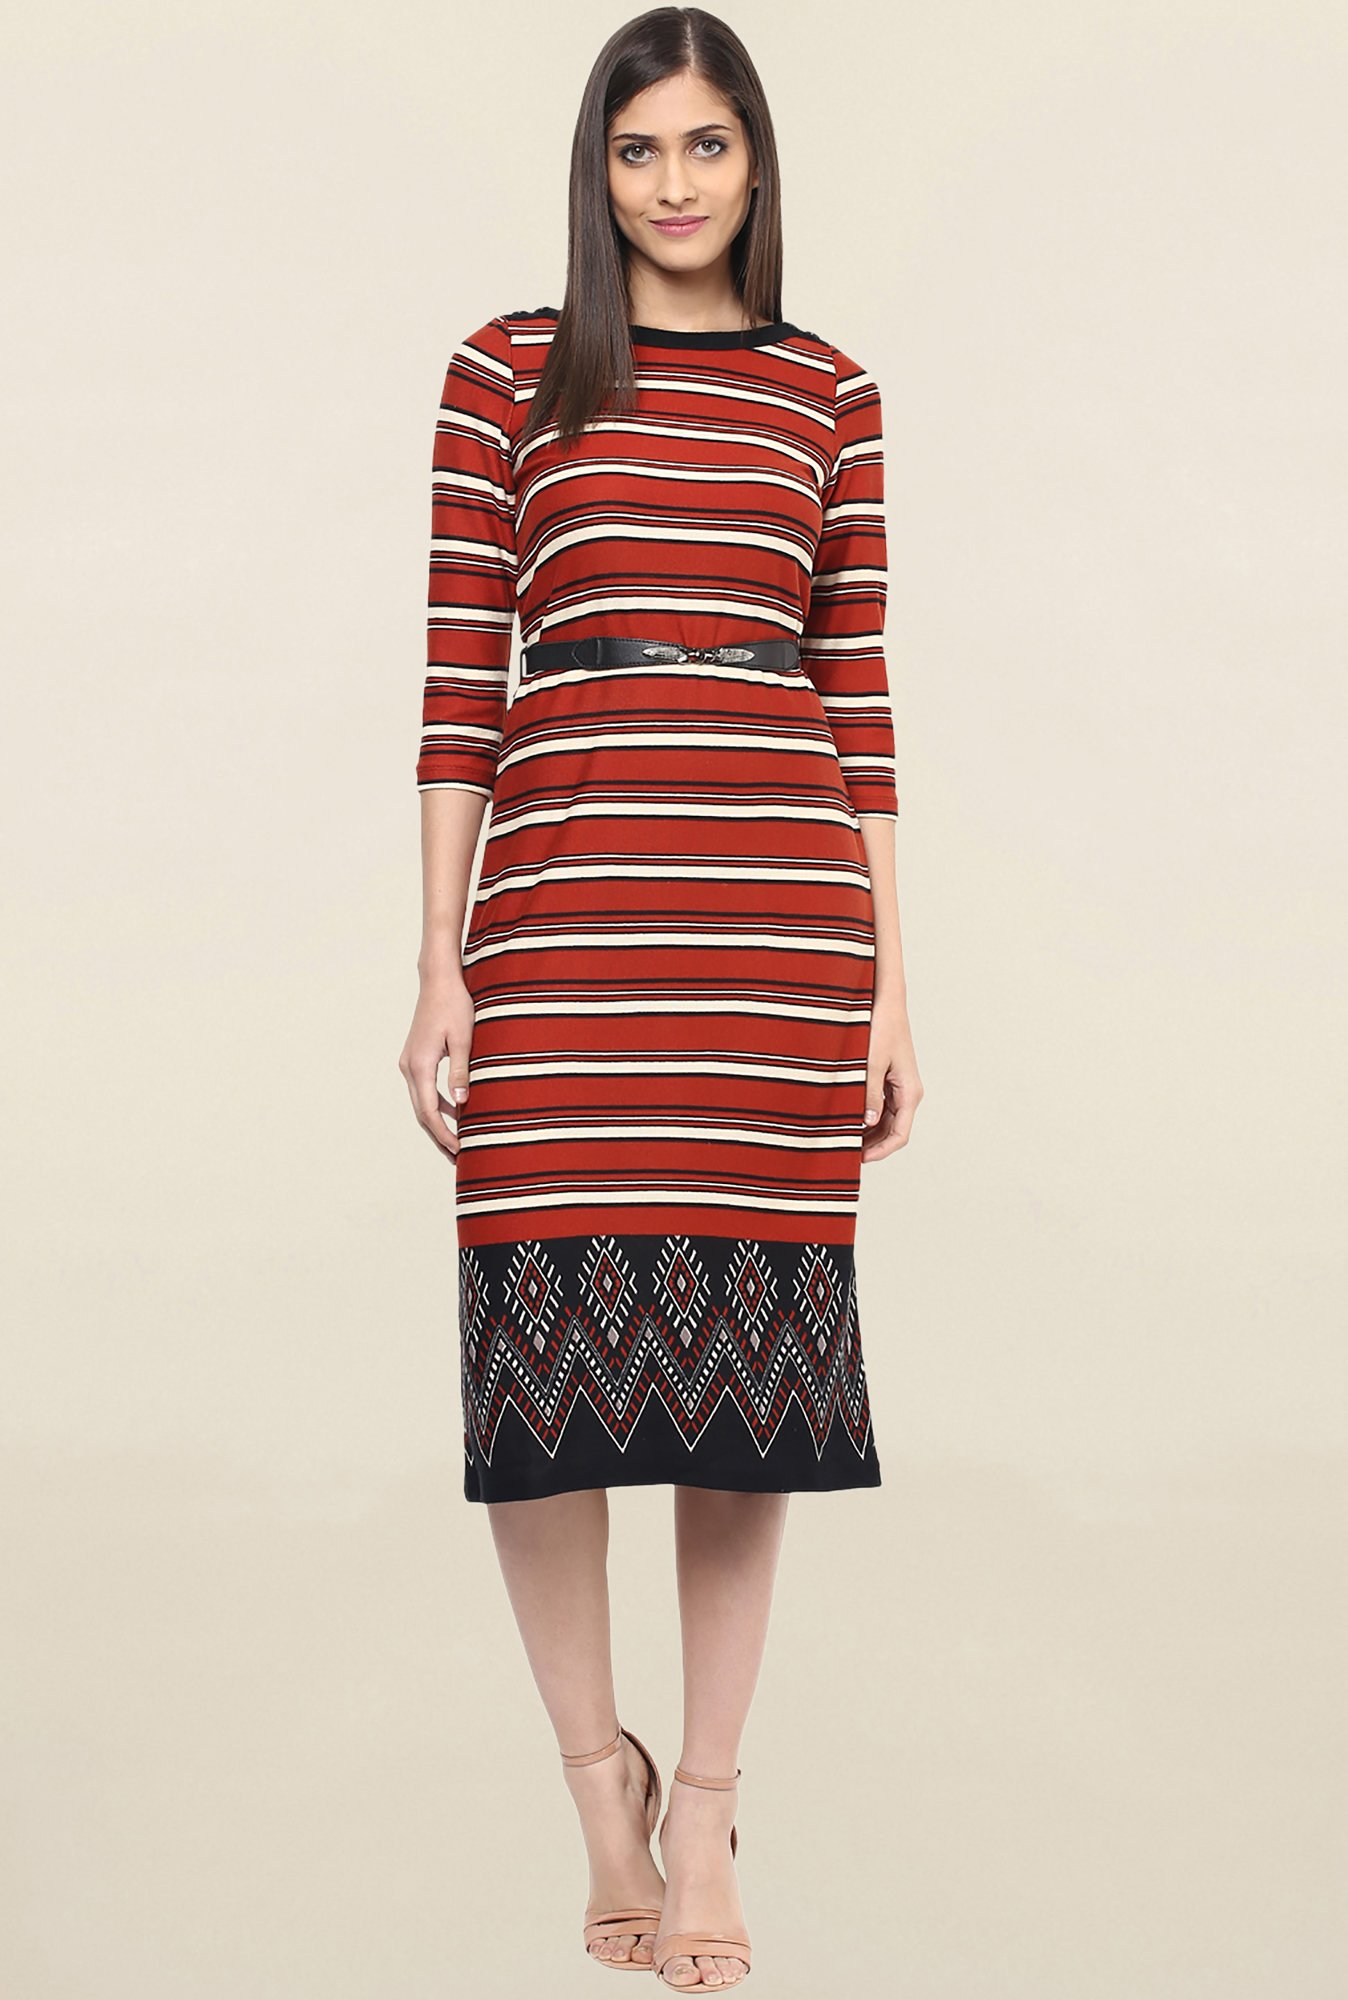 Buy 109 F Rust Striped Knee Length Dress for Women Online   Tata ... a370577be